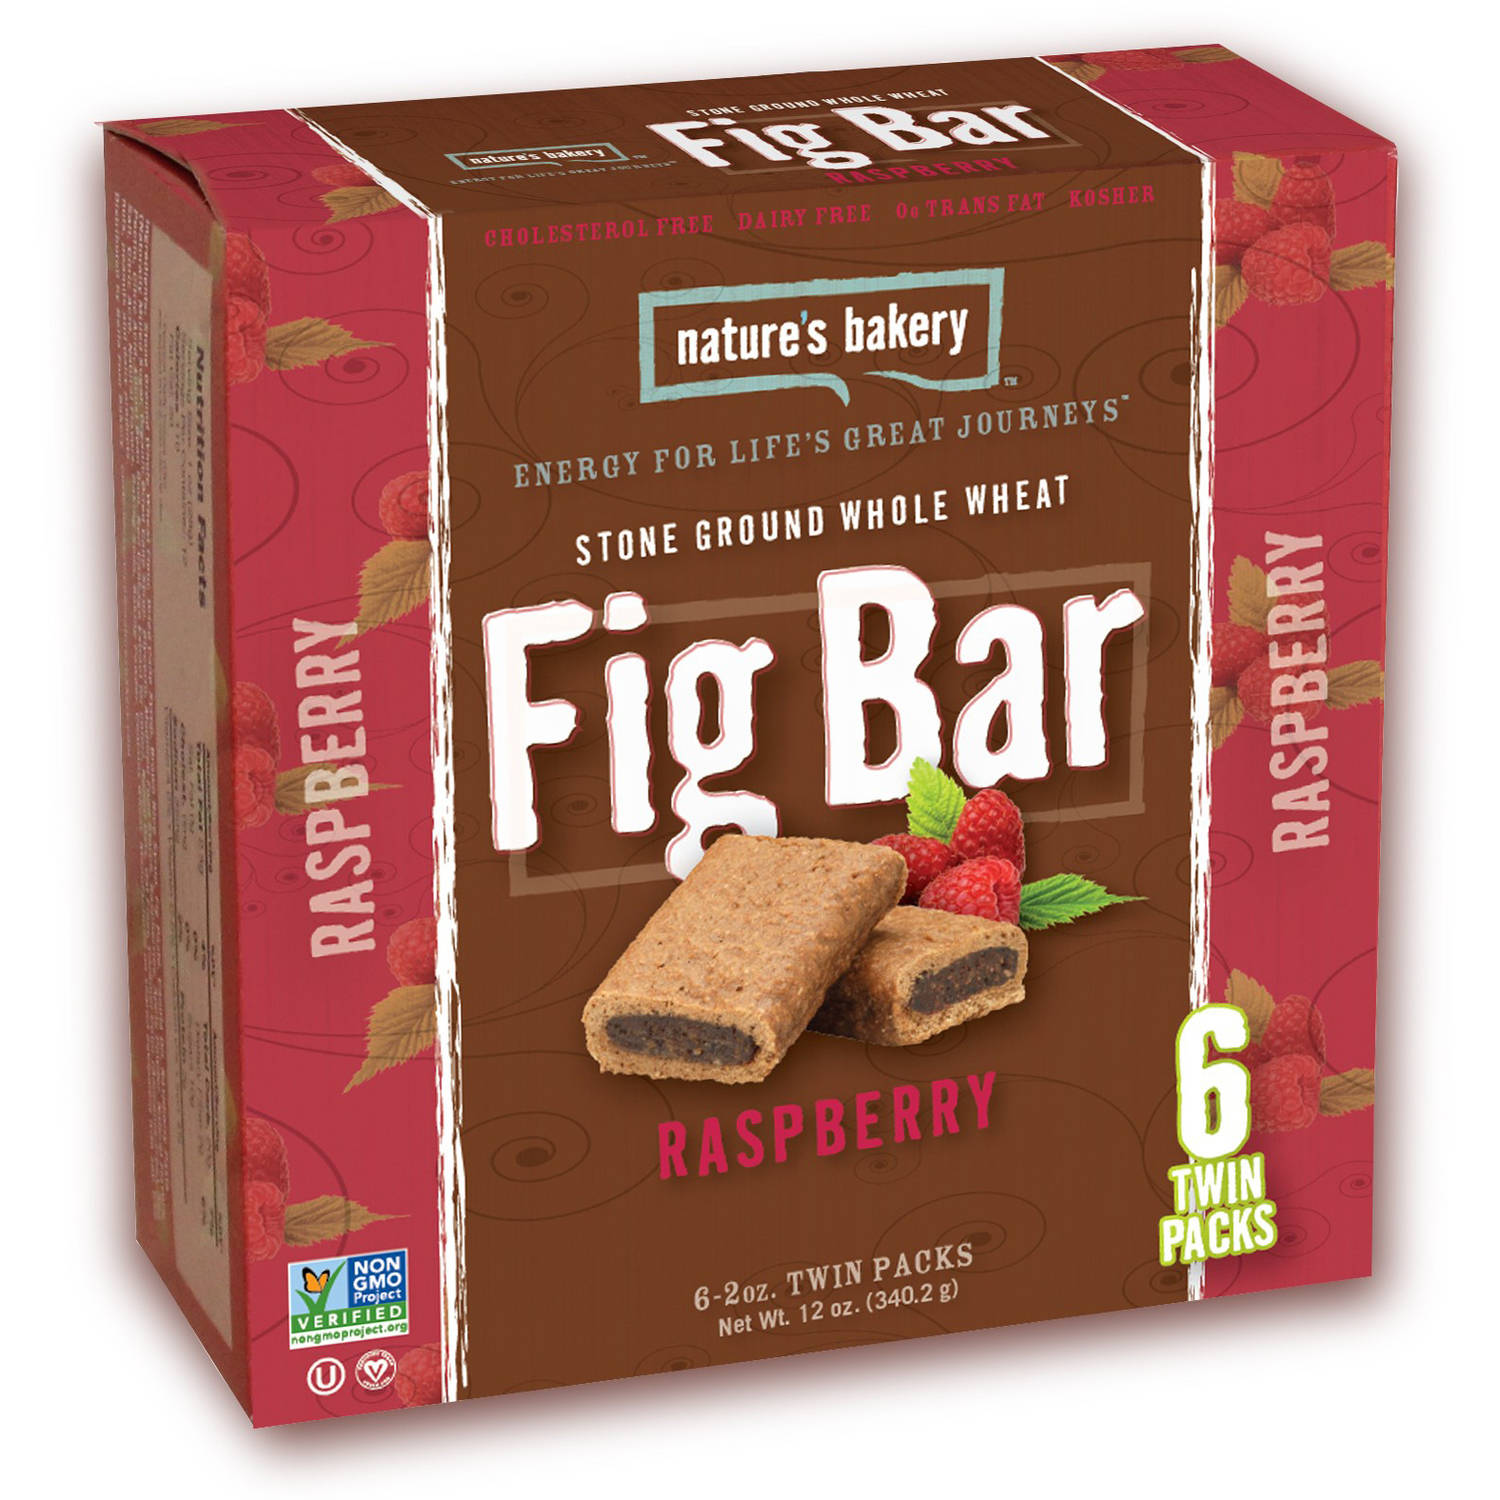 Nature's Bakery Stone Ground Whole Wheat Raspberry Fig Bars, 12 ct, (Pack of 6)